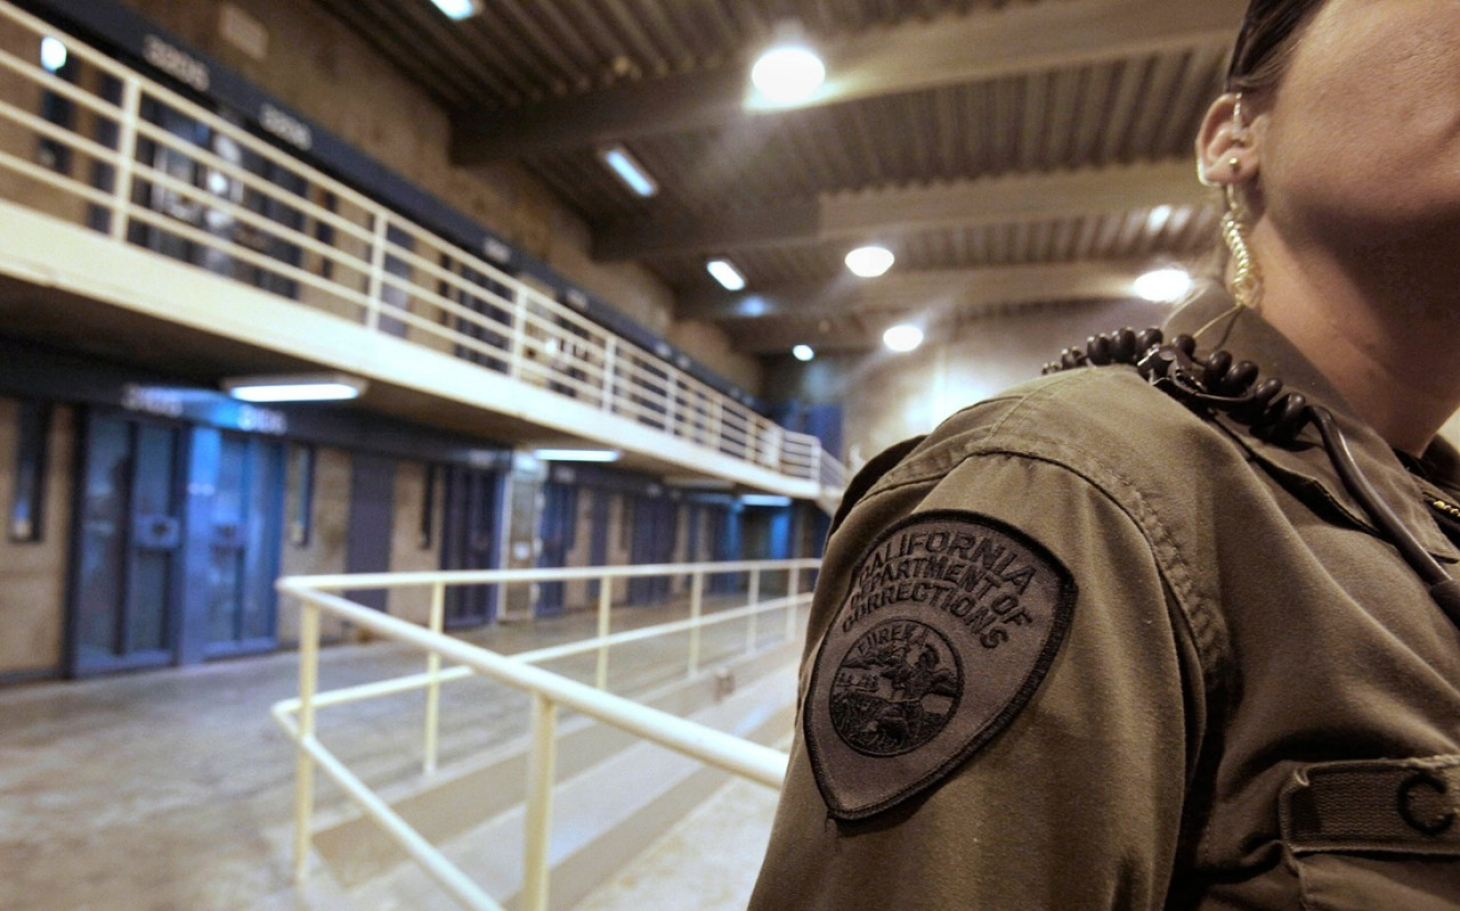 California's Race-Based Prison Restrictions Come Under Scrutiny